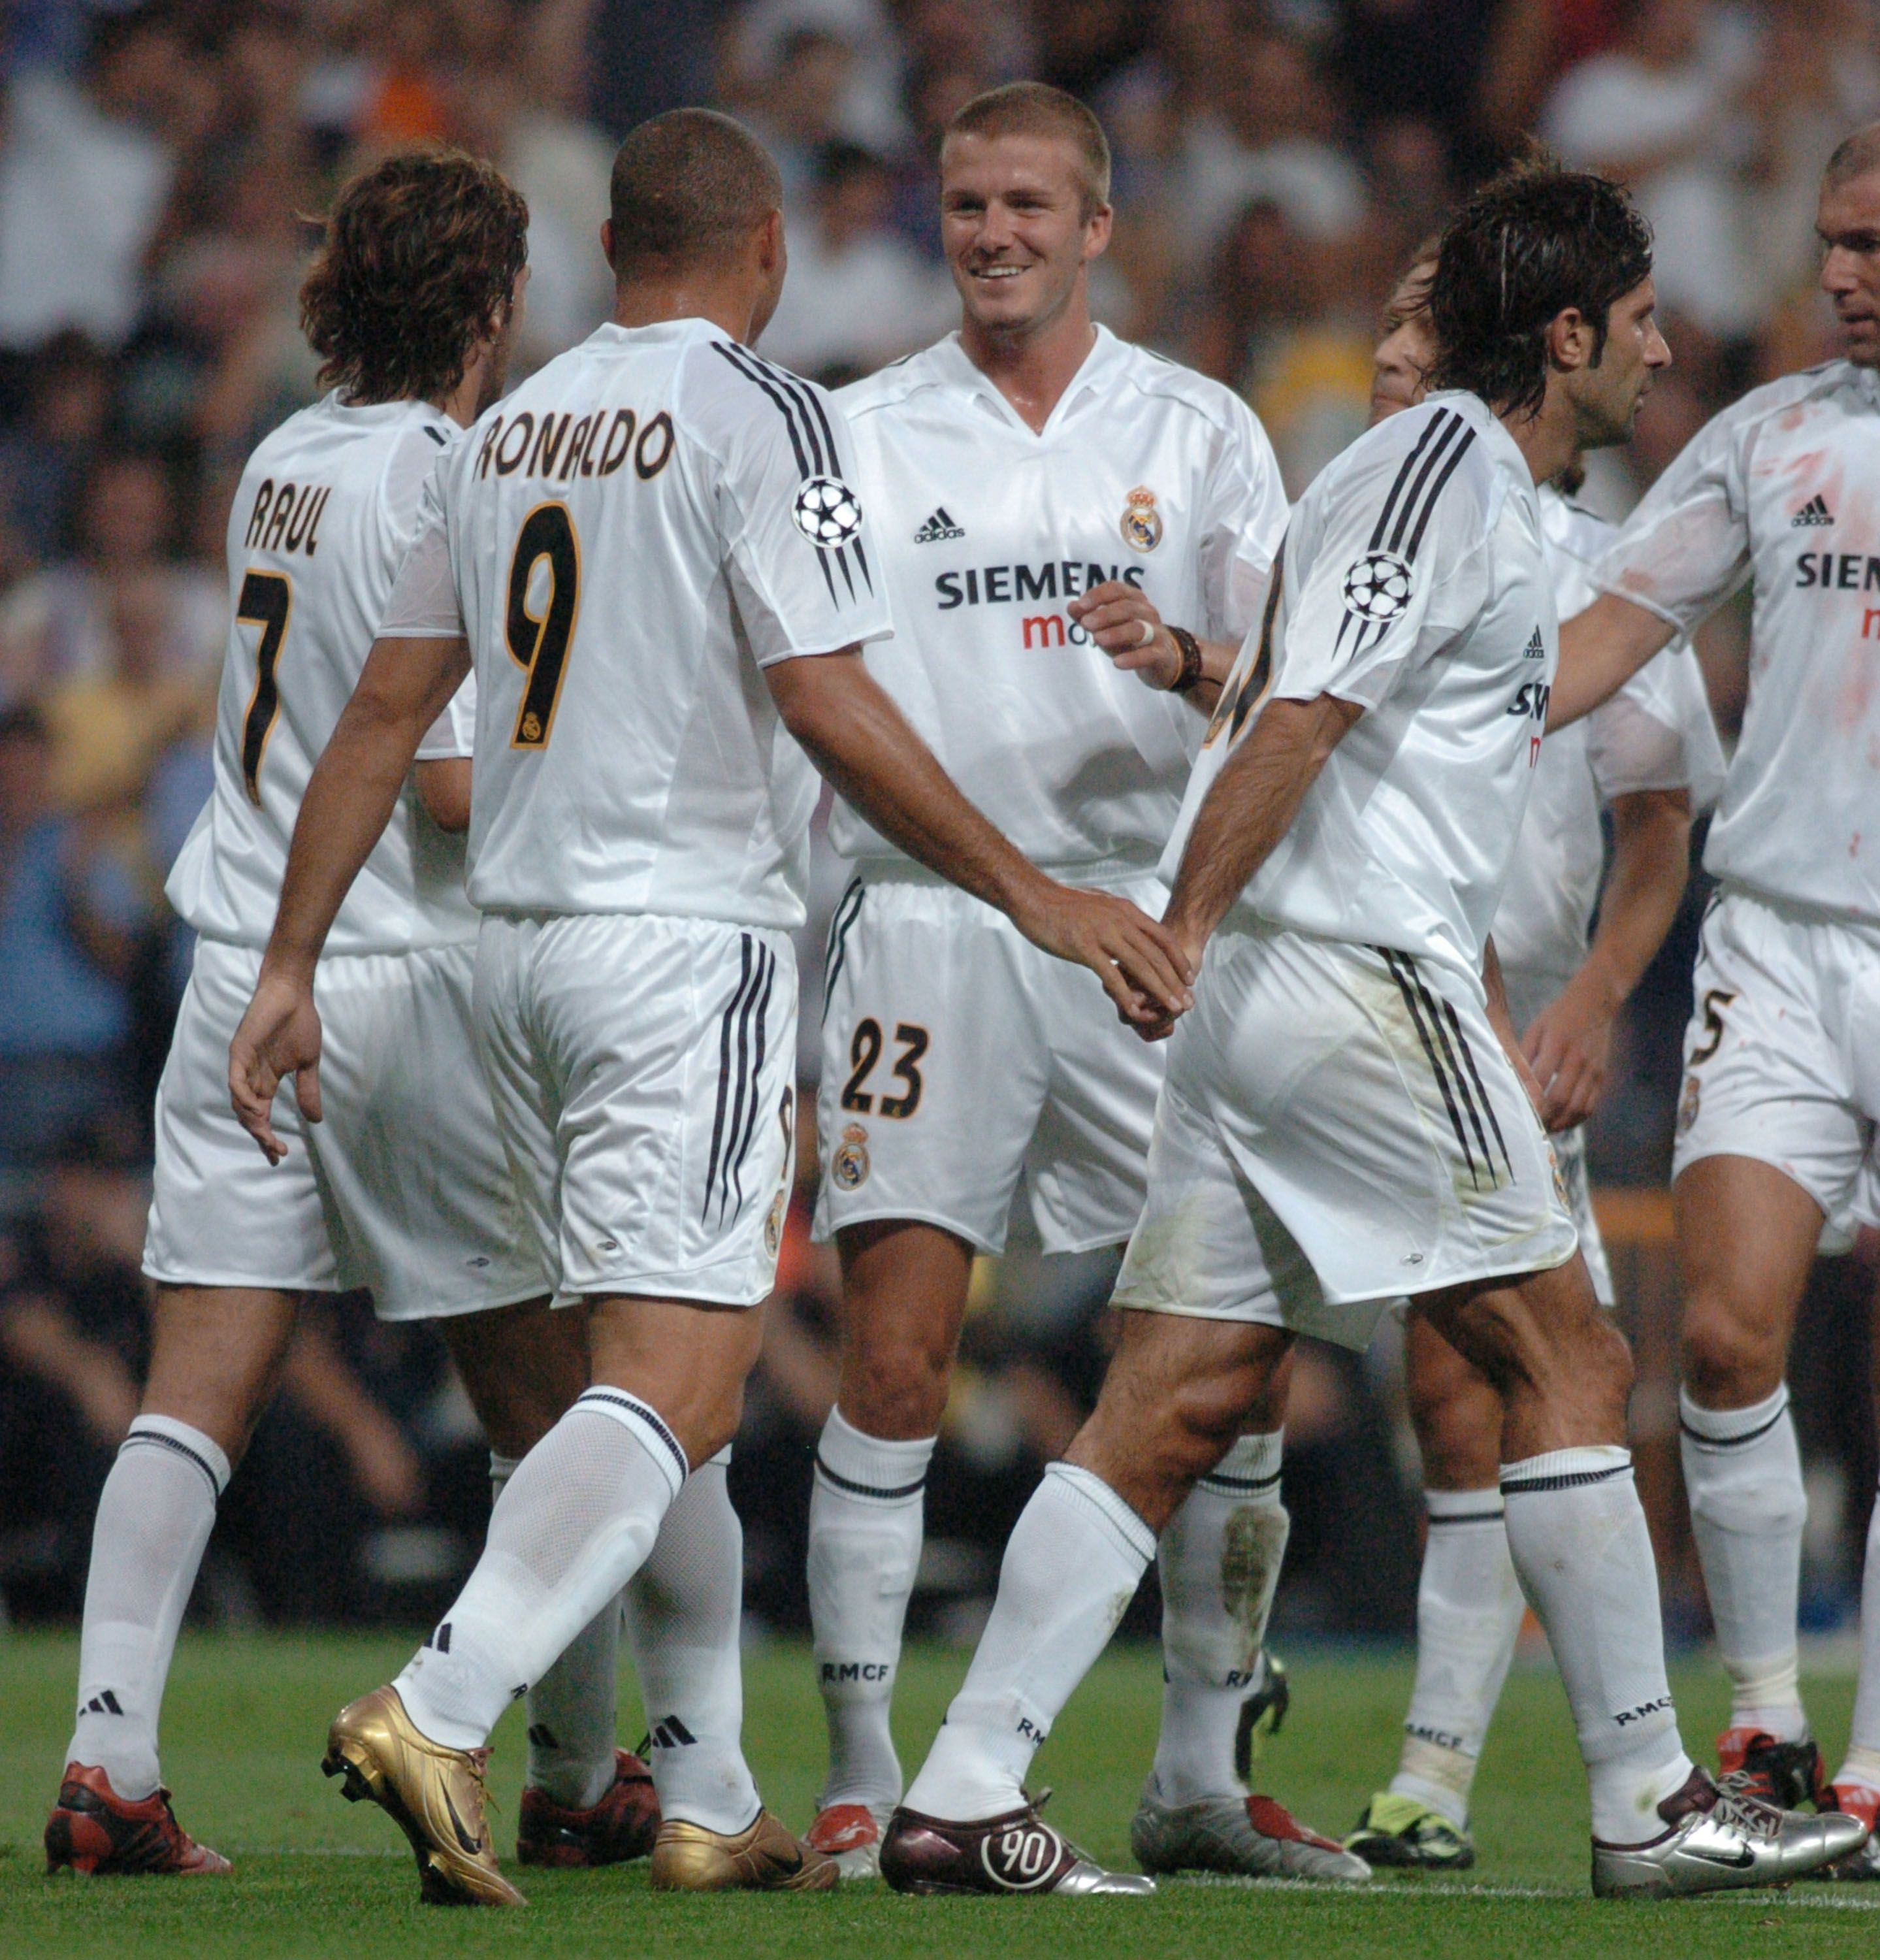 The Real Madrid Galacticos 2004/05